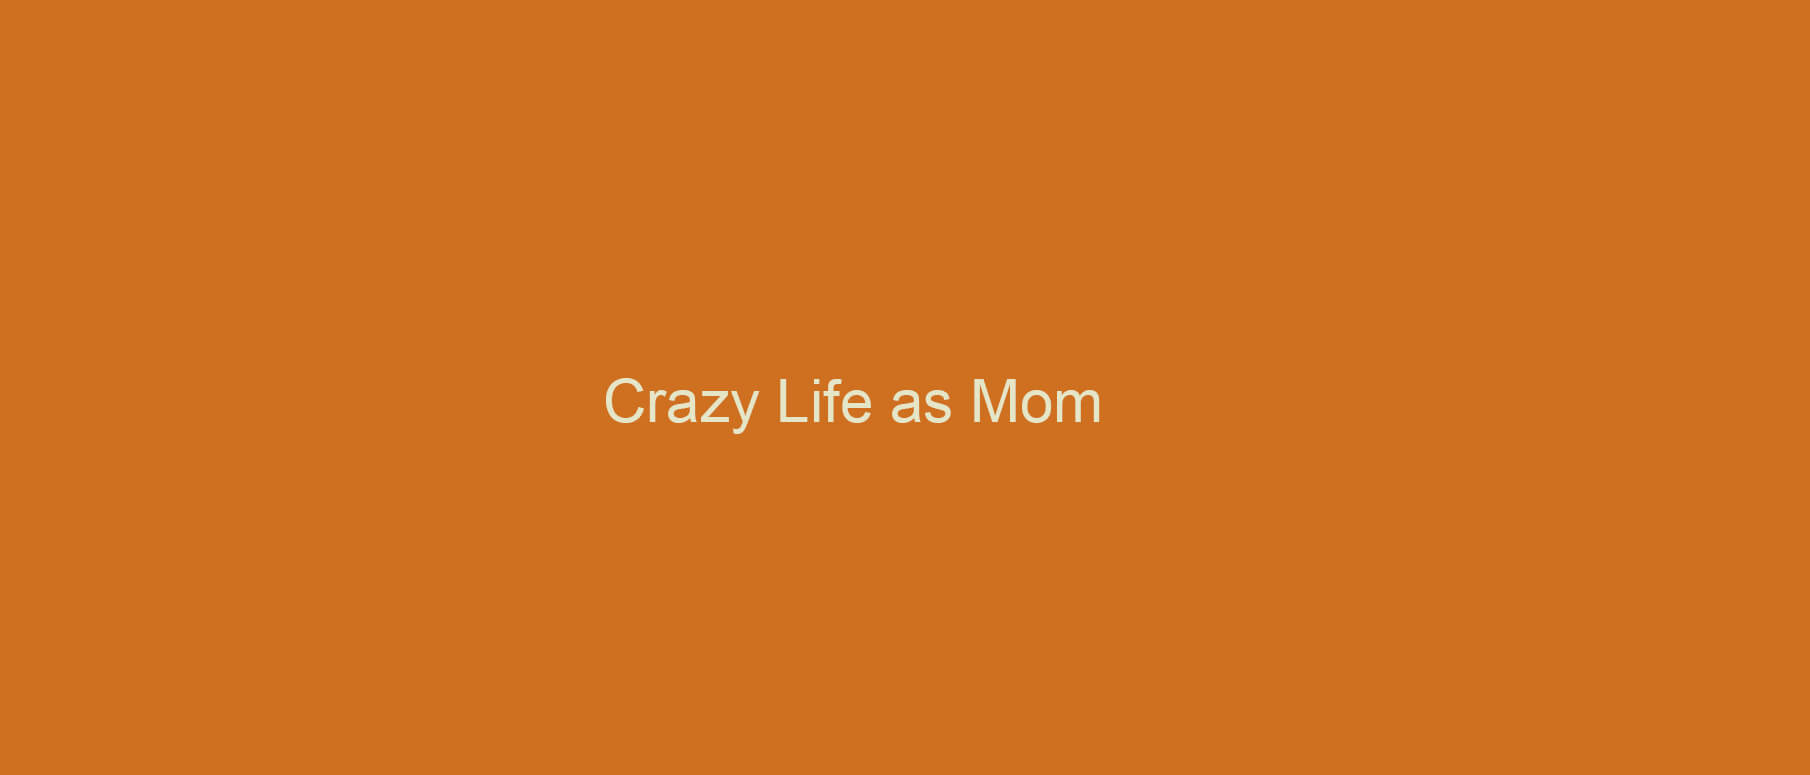 K-Tor Featured on Crazy Life as Mom Blog